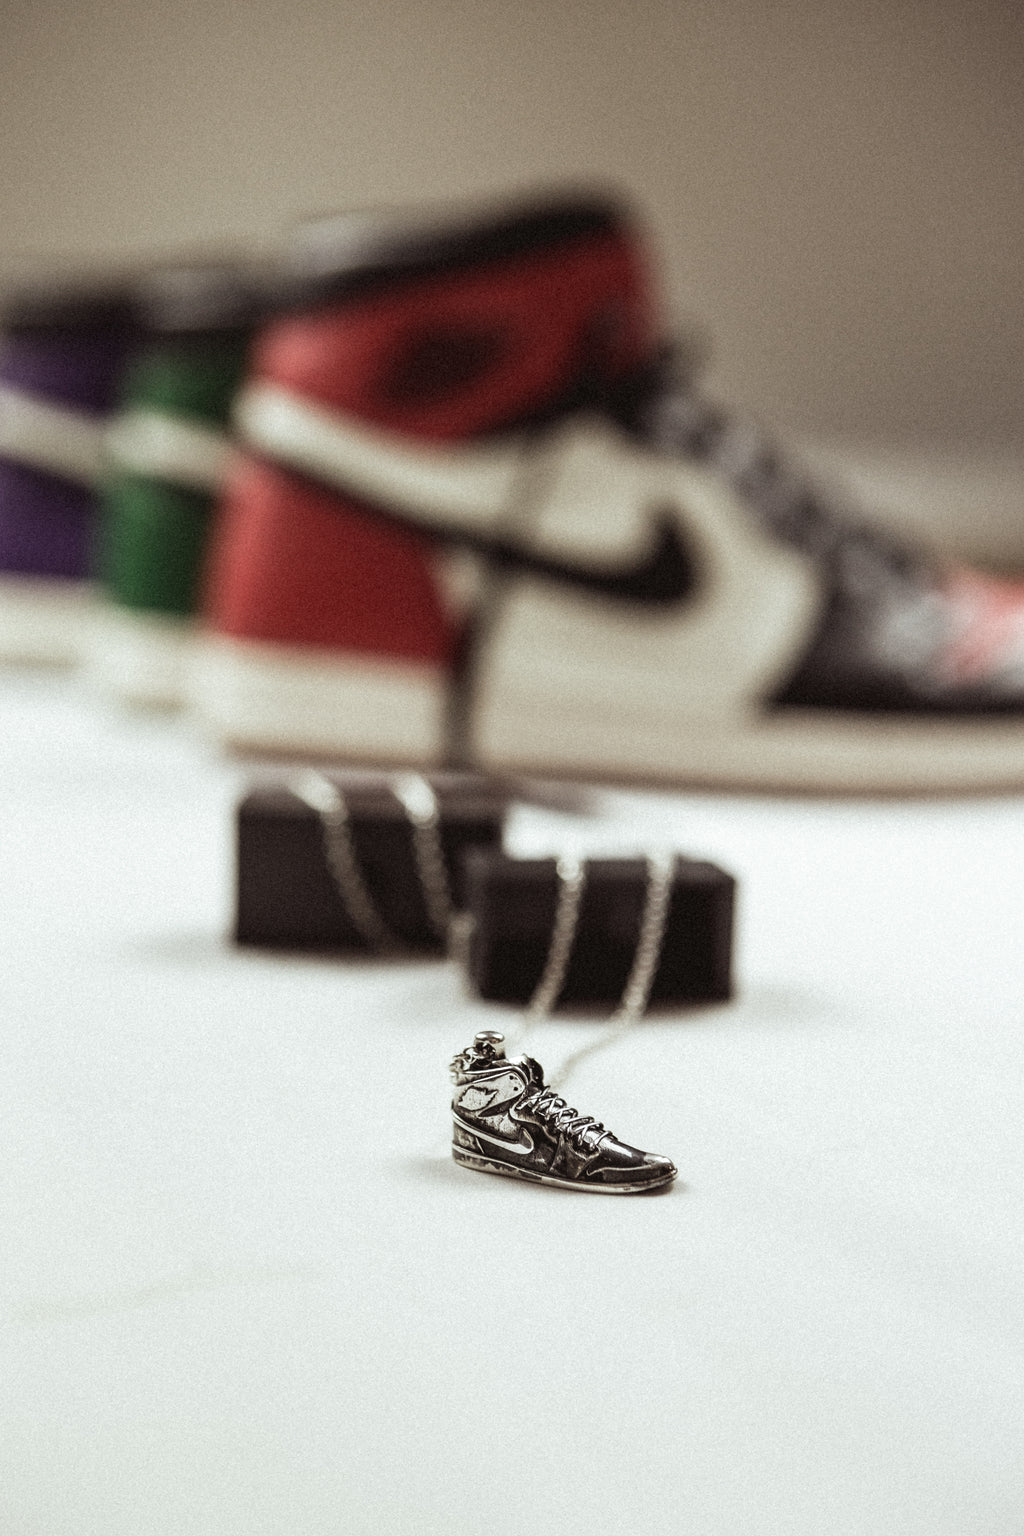 Air Jordan 1 - Silver necklace 925